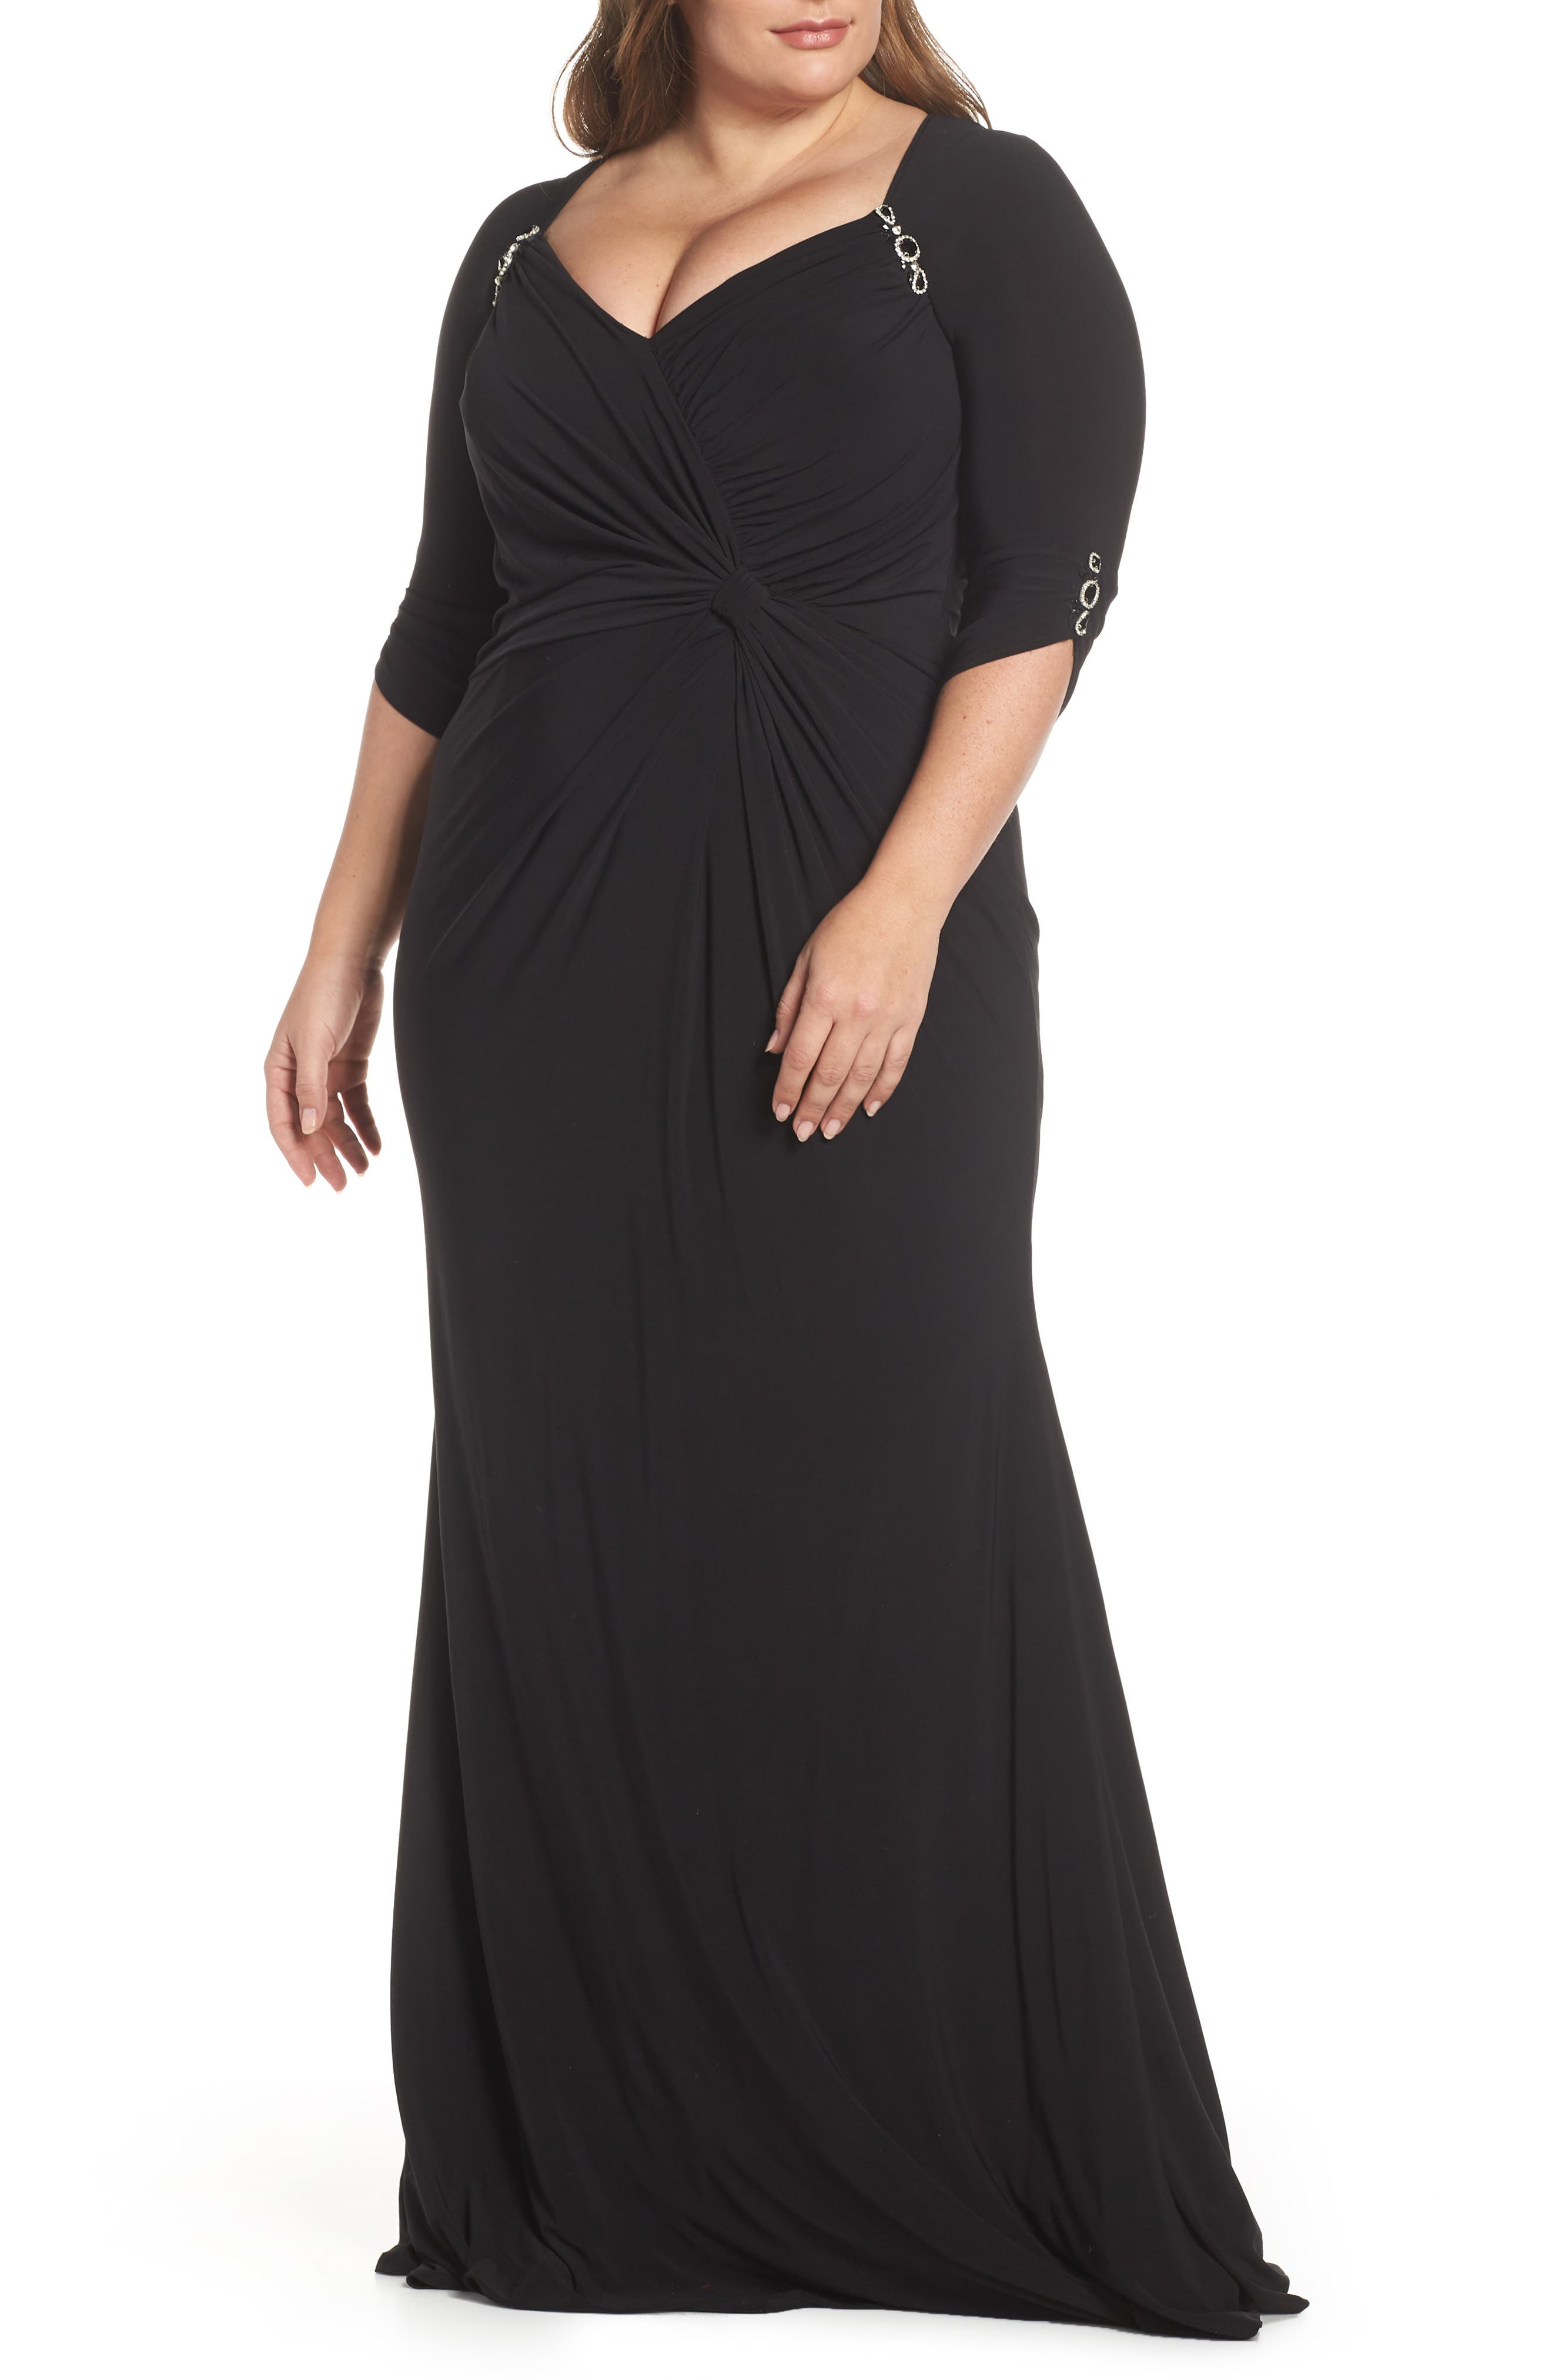 Plus Size MAC Duggal Crystal Embellished Twist Front Evening Dress, Black